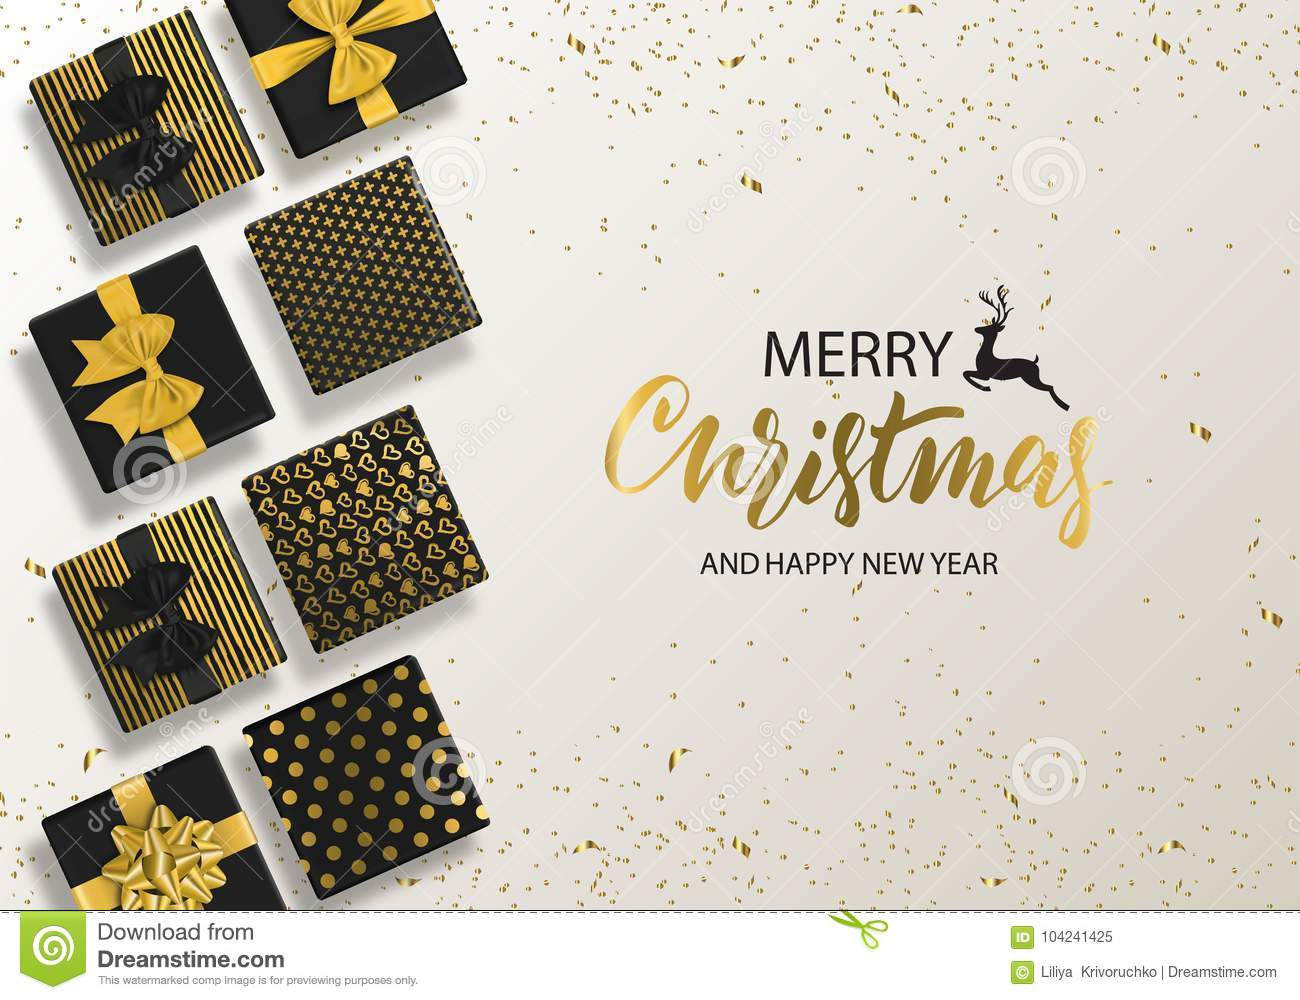 merry christmas and happy new year background with gift box and confetti modern design